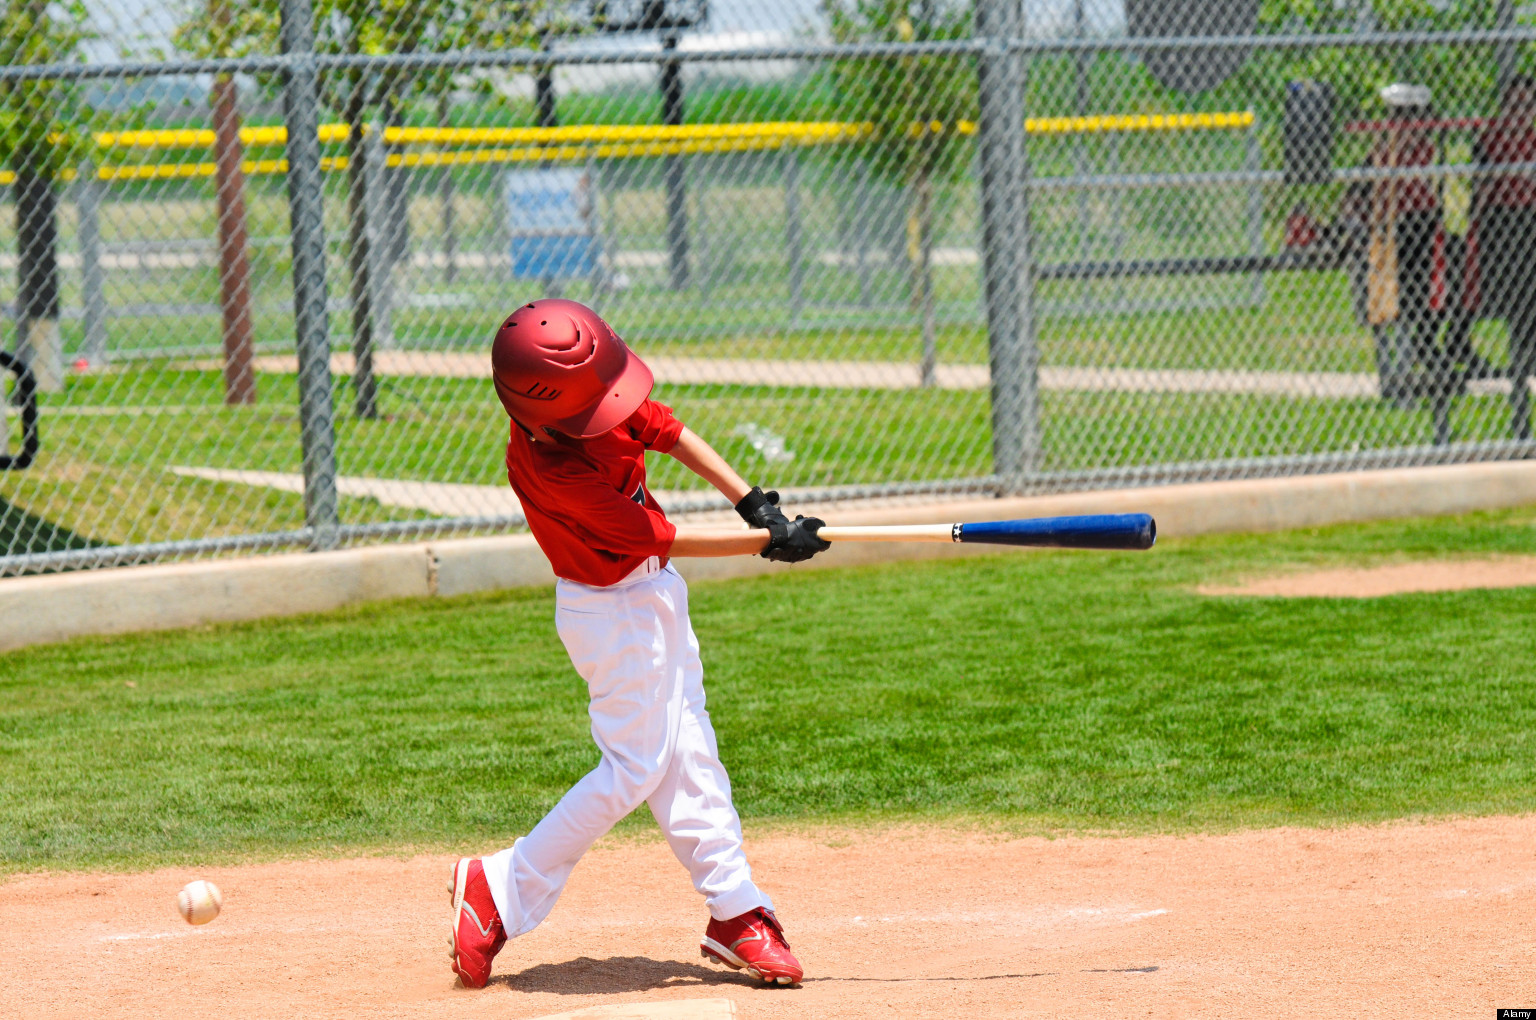 Youth baseball player swinging the bat.